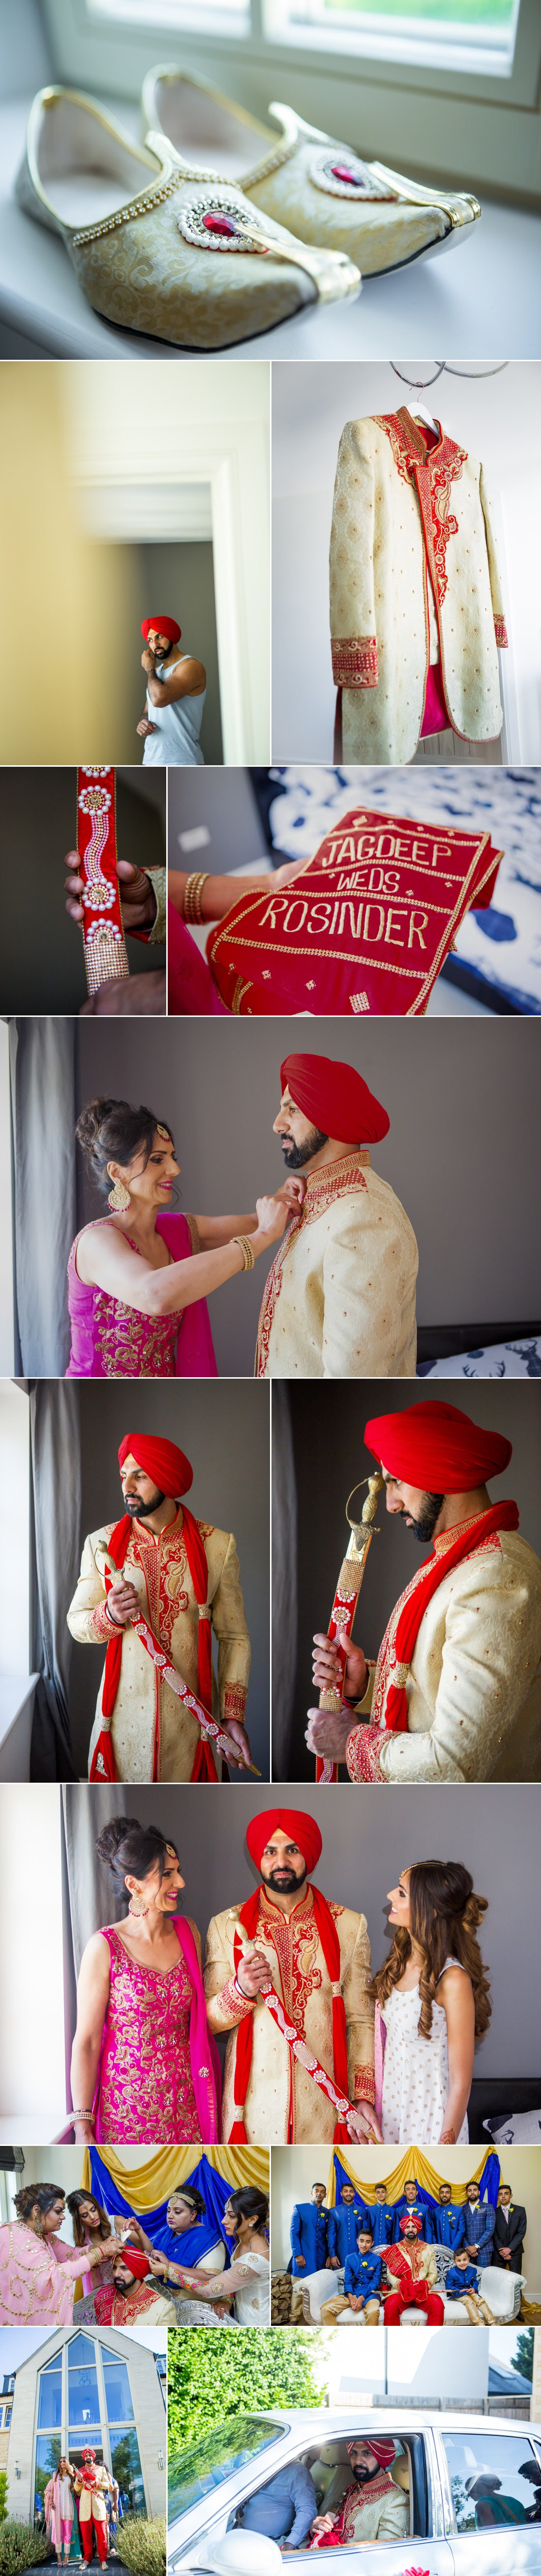 Wedding Photography at Supreme banqueting Hall